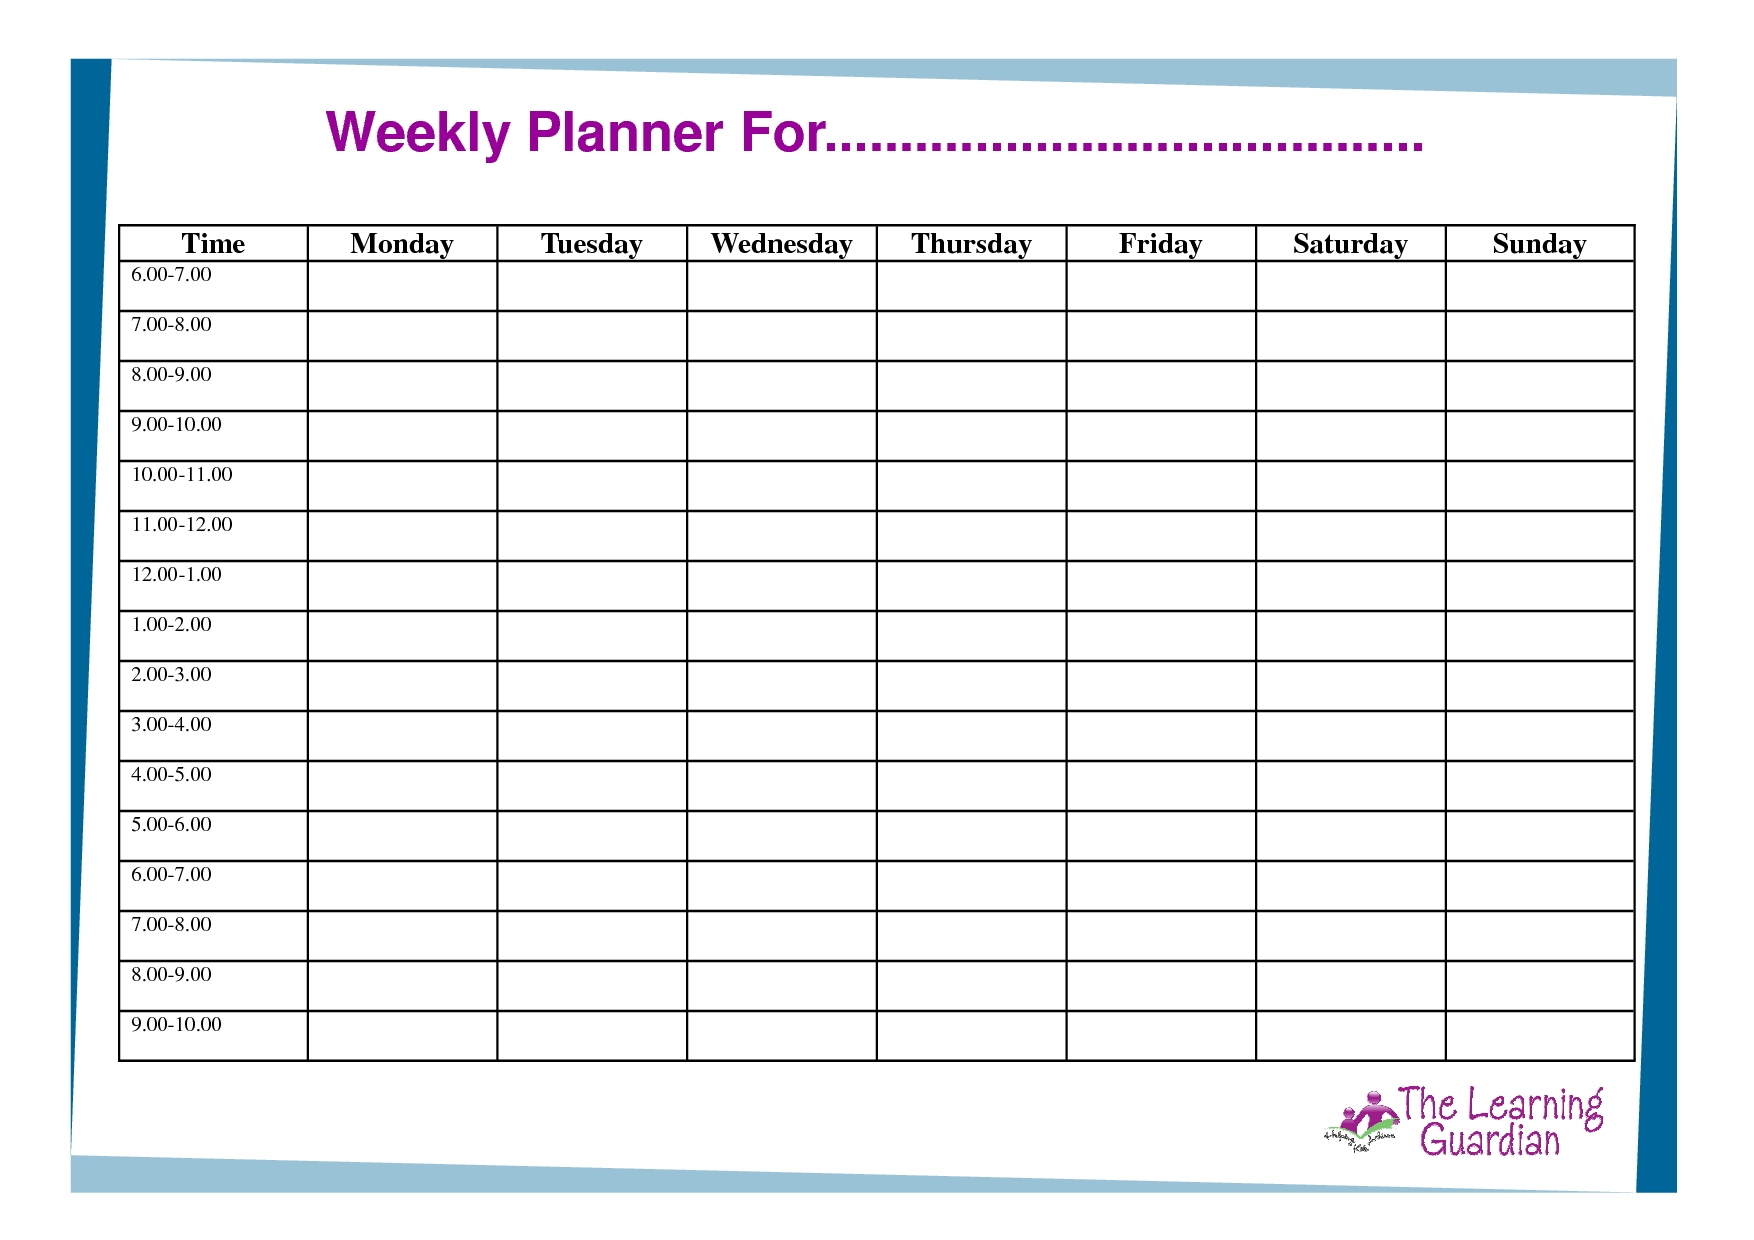 Free Printable Calendar With Time Slots   Ten Free for Weekly Schedule Template With Time Slots